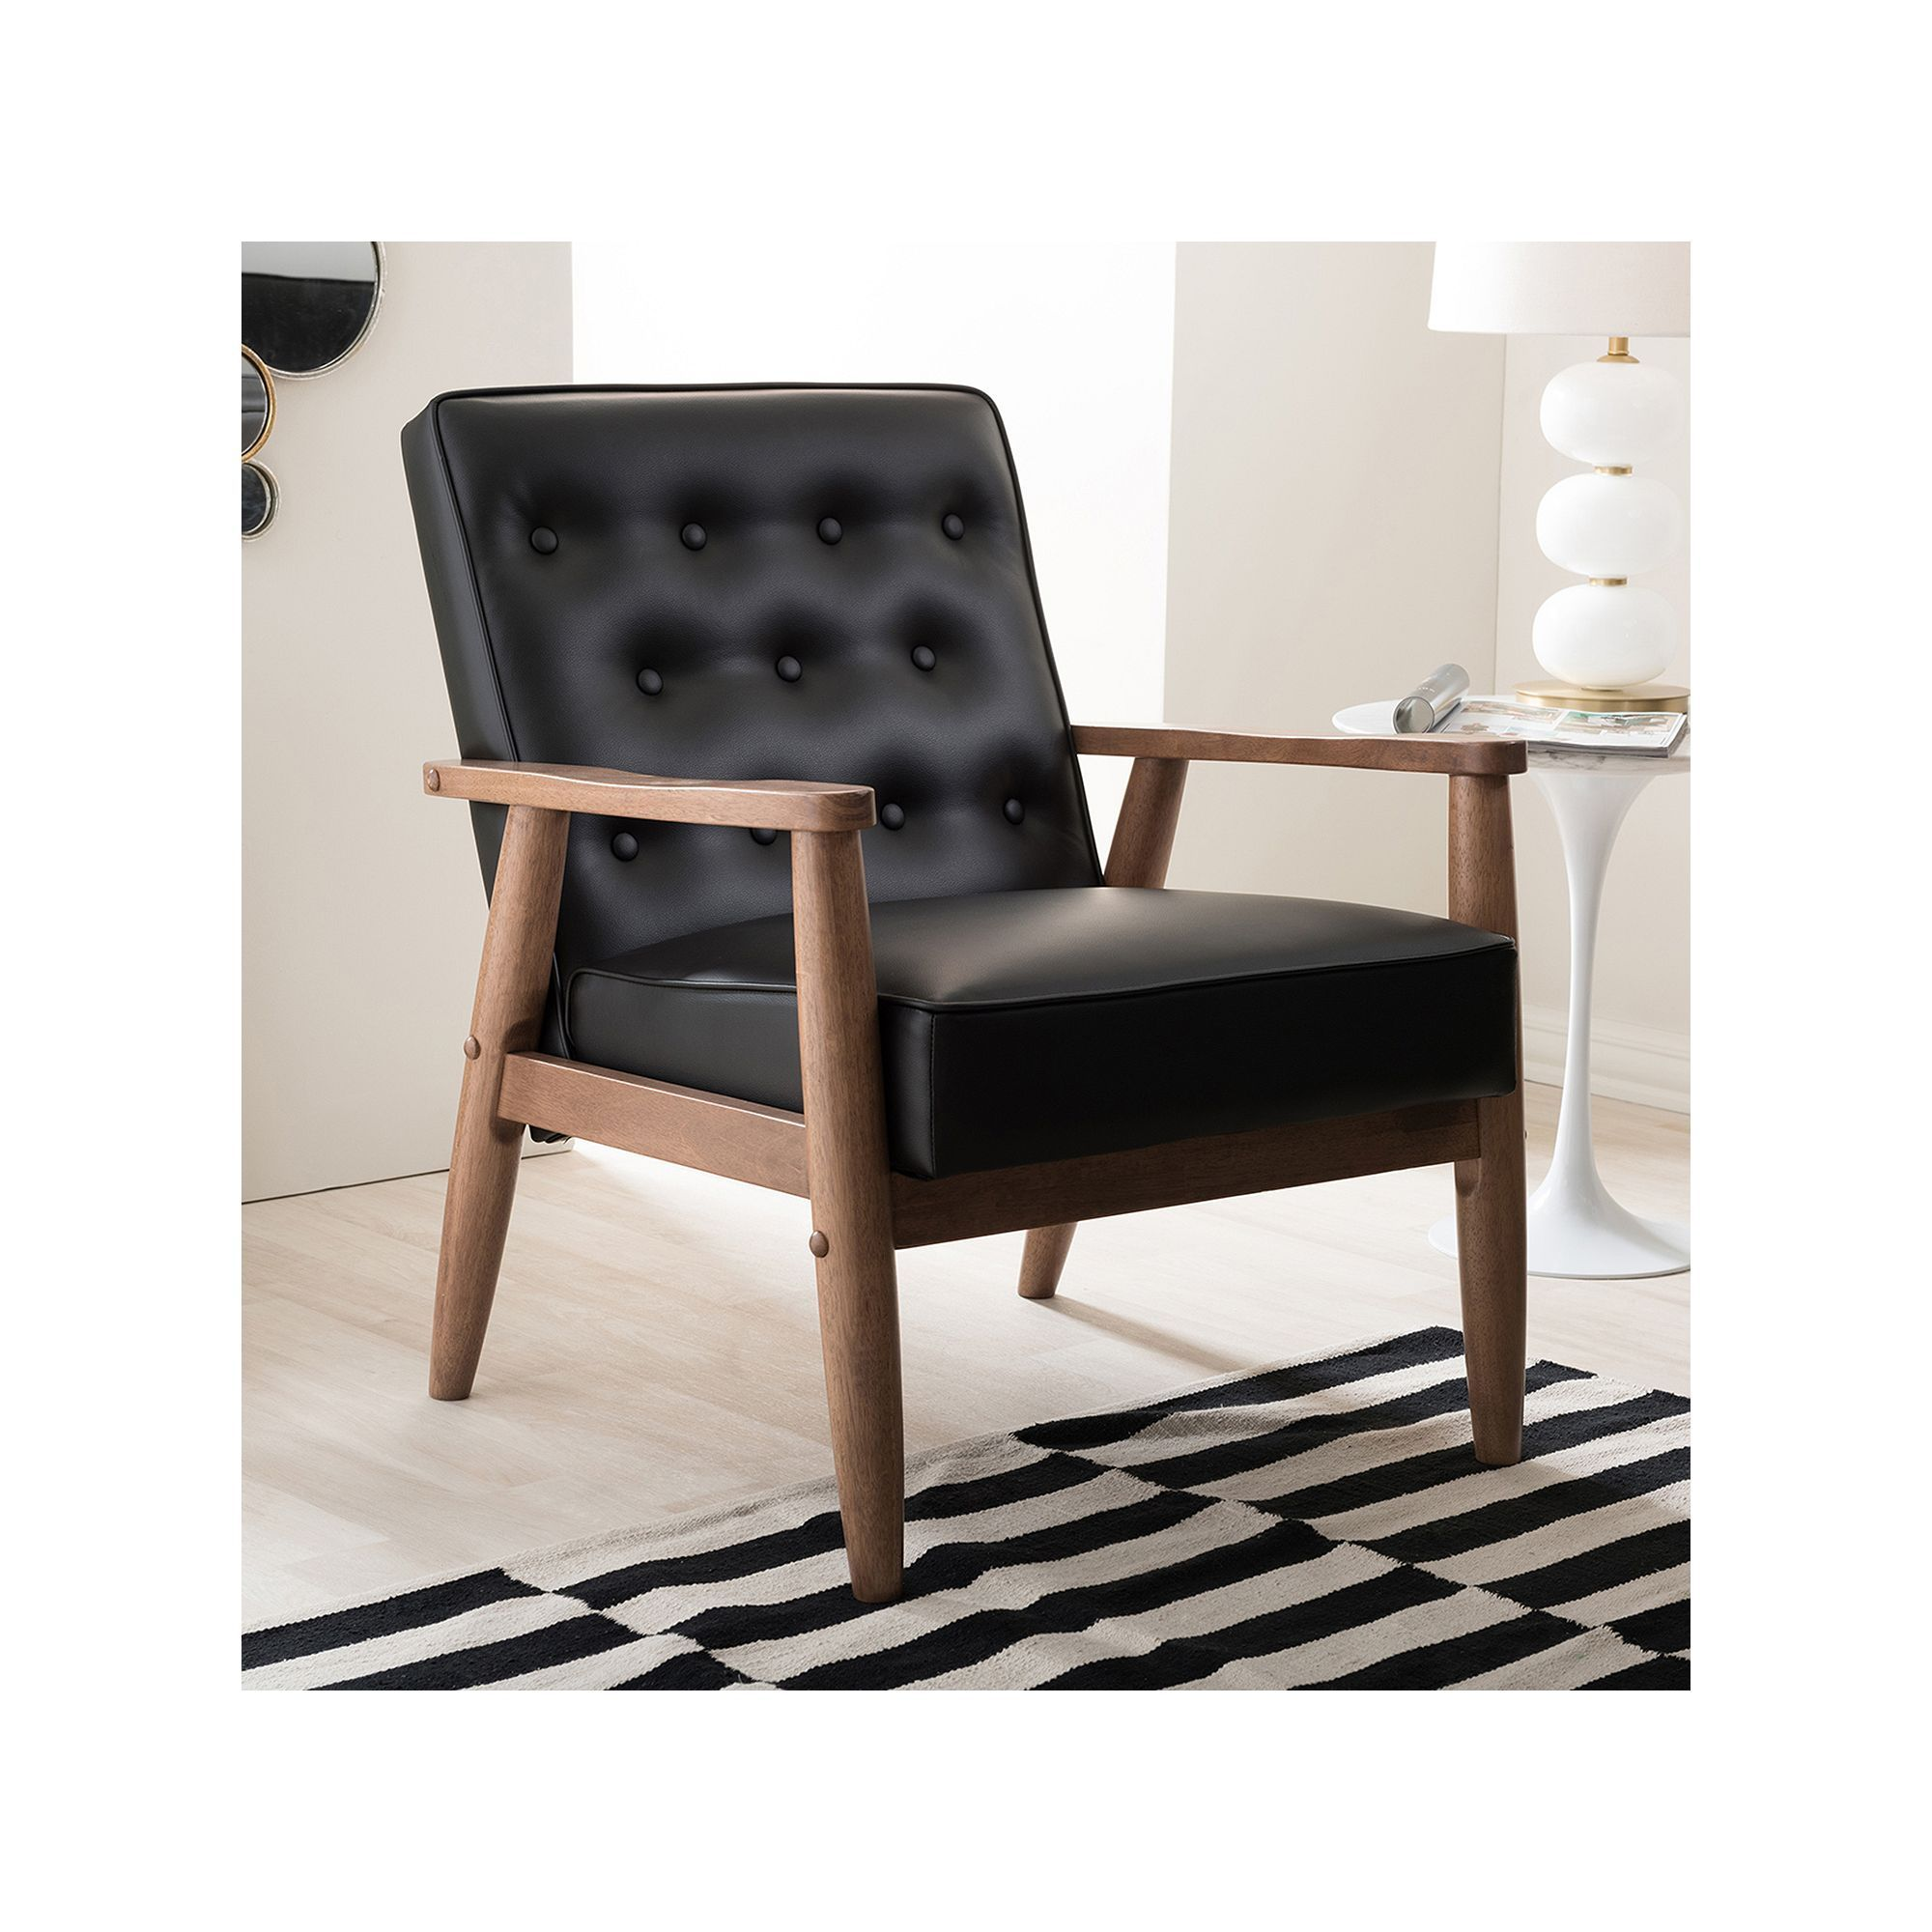 Upholstered rocking chairs baxton studio sorrento midcentury modern lounge accent chair  products